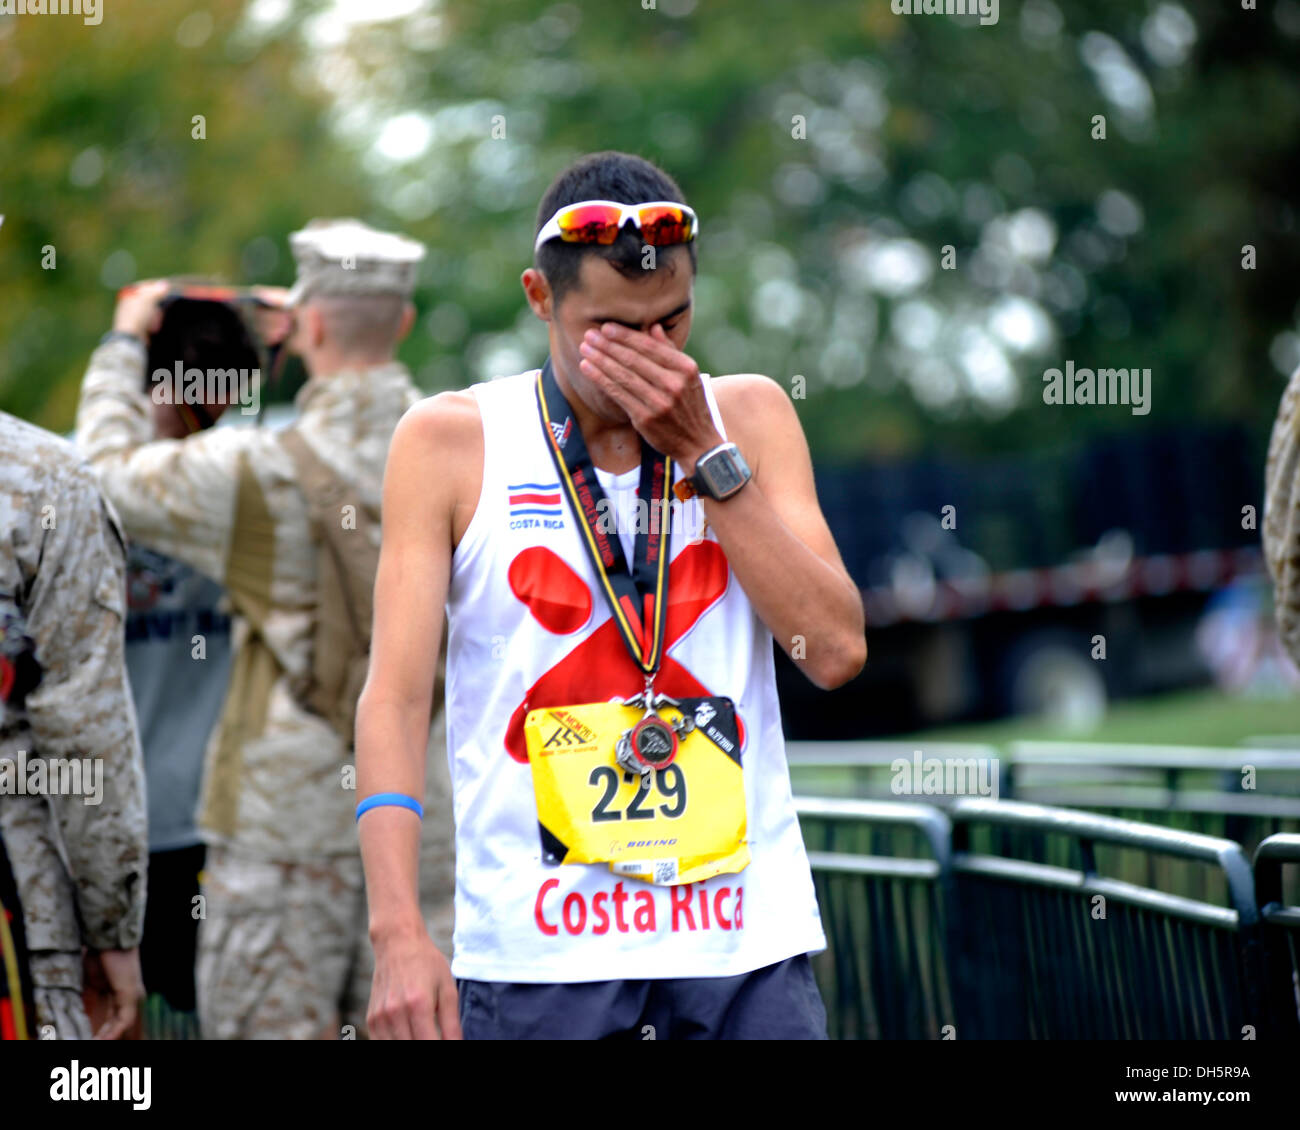 Felix Murillo, a runner in the 38th Annual Marine Corps Marathon, displays emotion upon his completion of running 26.2 miles, Washington D.C., Oct. 27, 2013. Known as 'The People's Marathon,' the 26.2 mile race, rated the 3rd largest marathon in the Unite - Stock Image